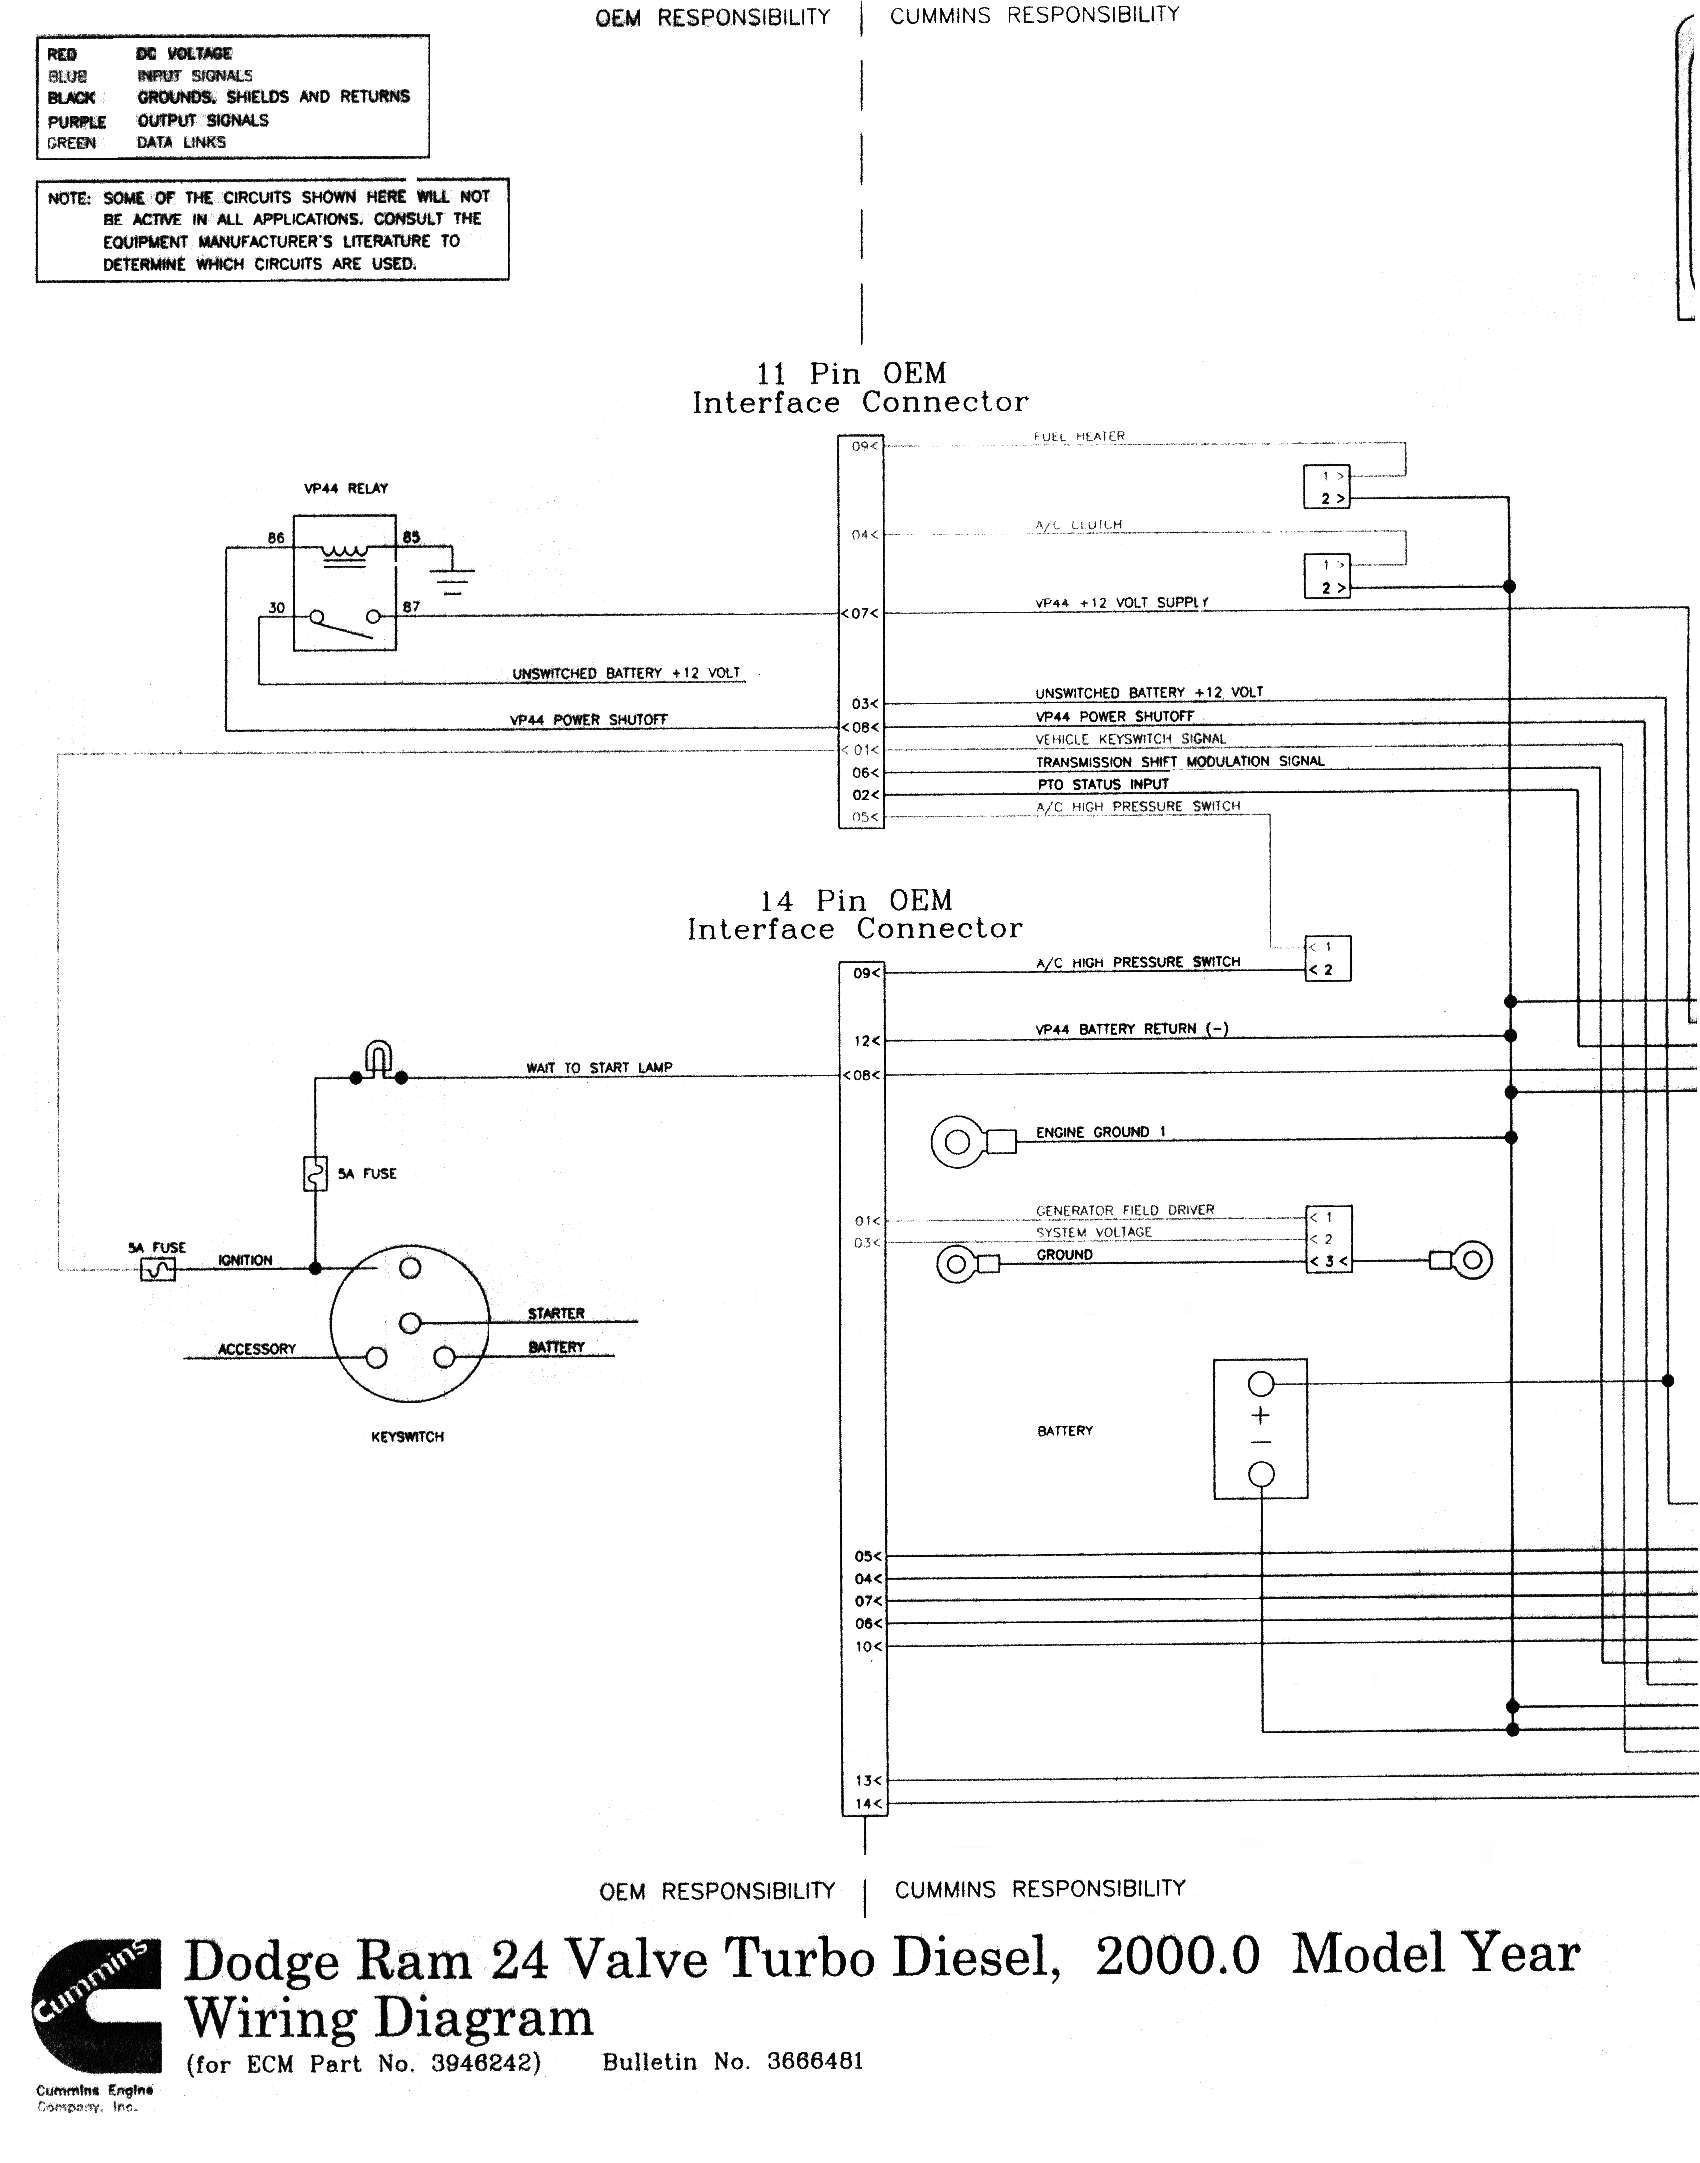 2005 dodge ram 2500 diesel wiring diagram Download-Dodge Ram Wiring Diagram Stereo Wiring Diagram for 2002 Dodge Ram 1500 Best 2007 Ecm 10-g